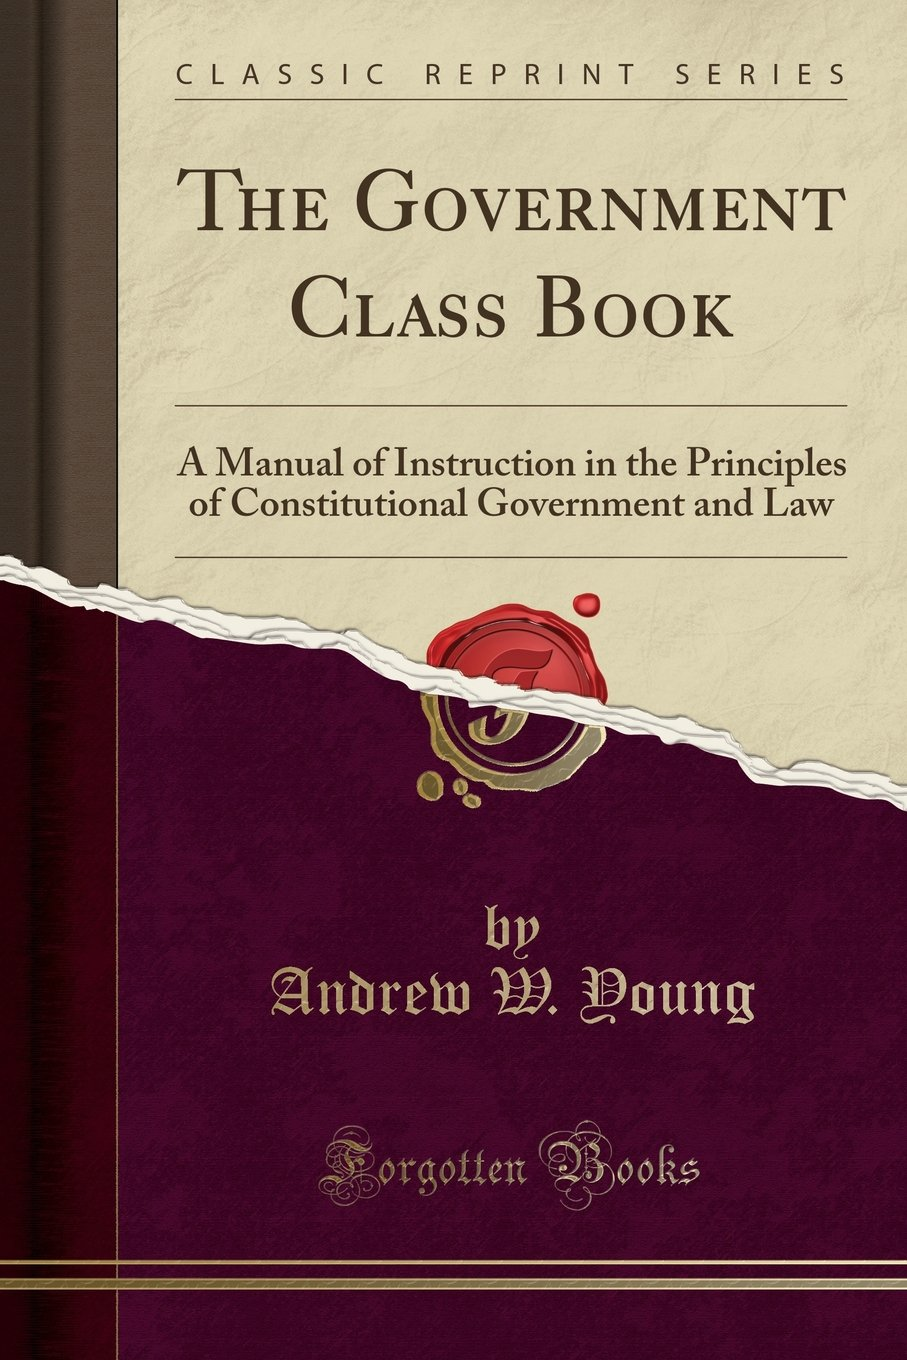 The Government Class Book: A Manual of Instruction in the Principles of  Constitutional Government and Law (Classic Reprint): Andrew W. Young:  9781330442401: ...